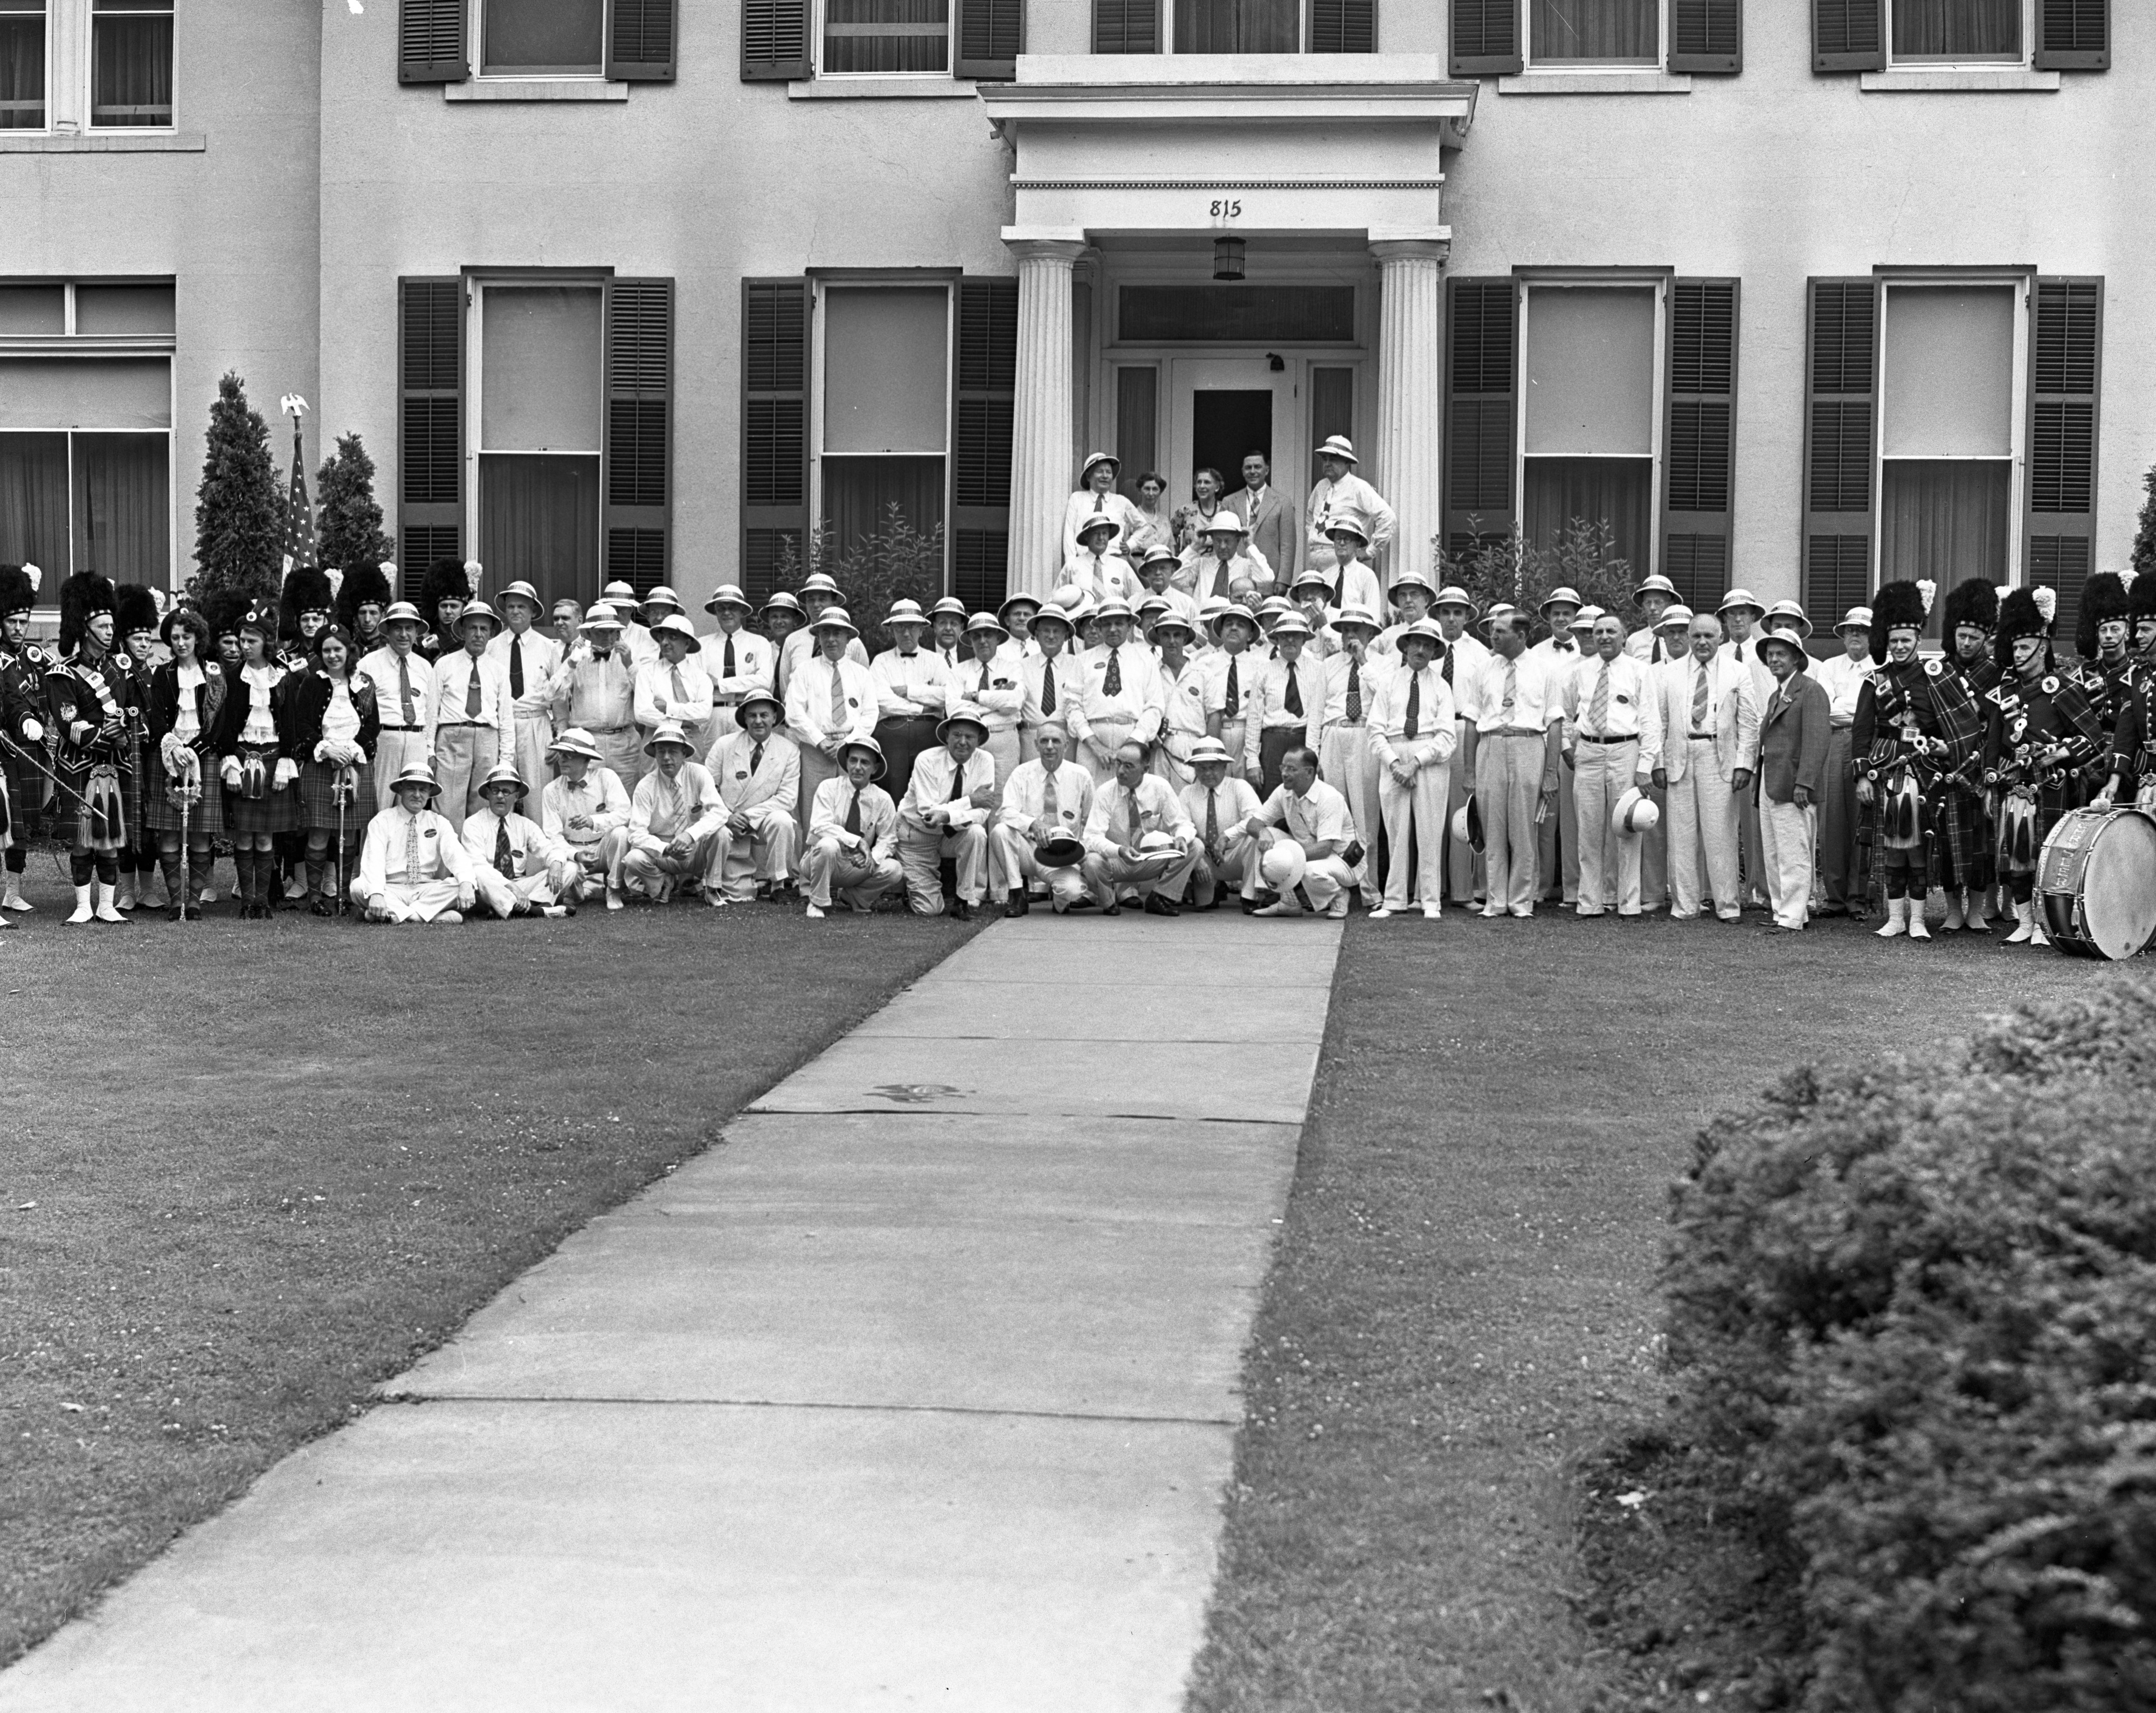 University of Michigan Reunion Class of 1909 in front of U-M President's House, June 1939 image